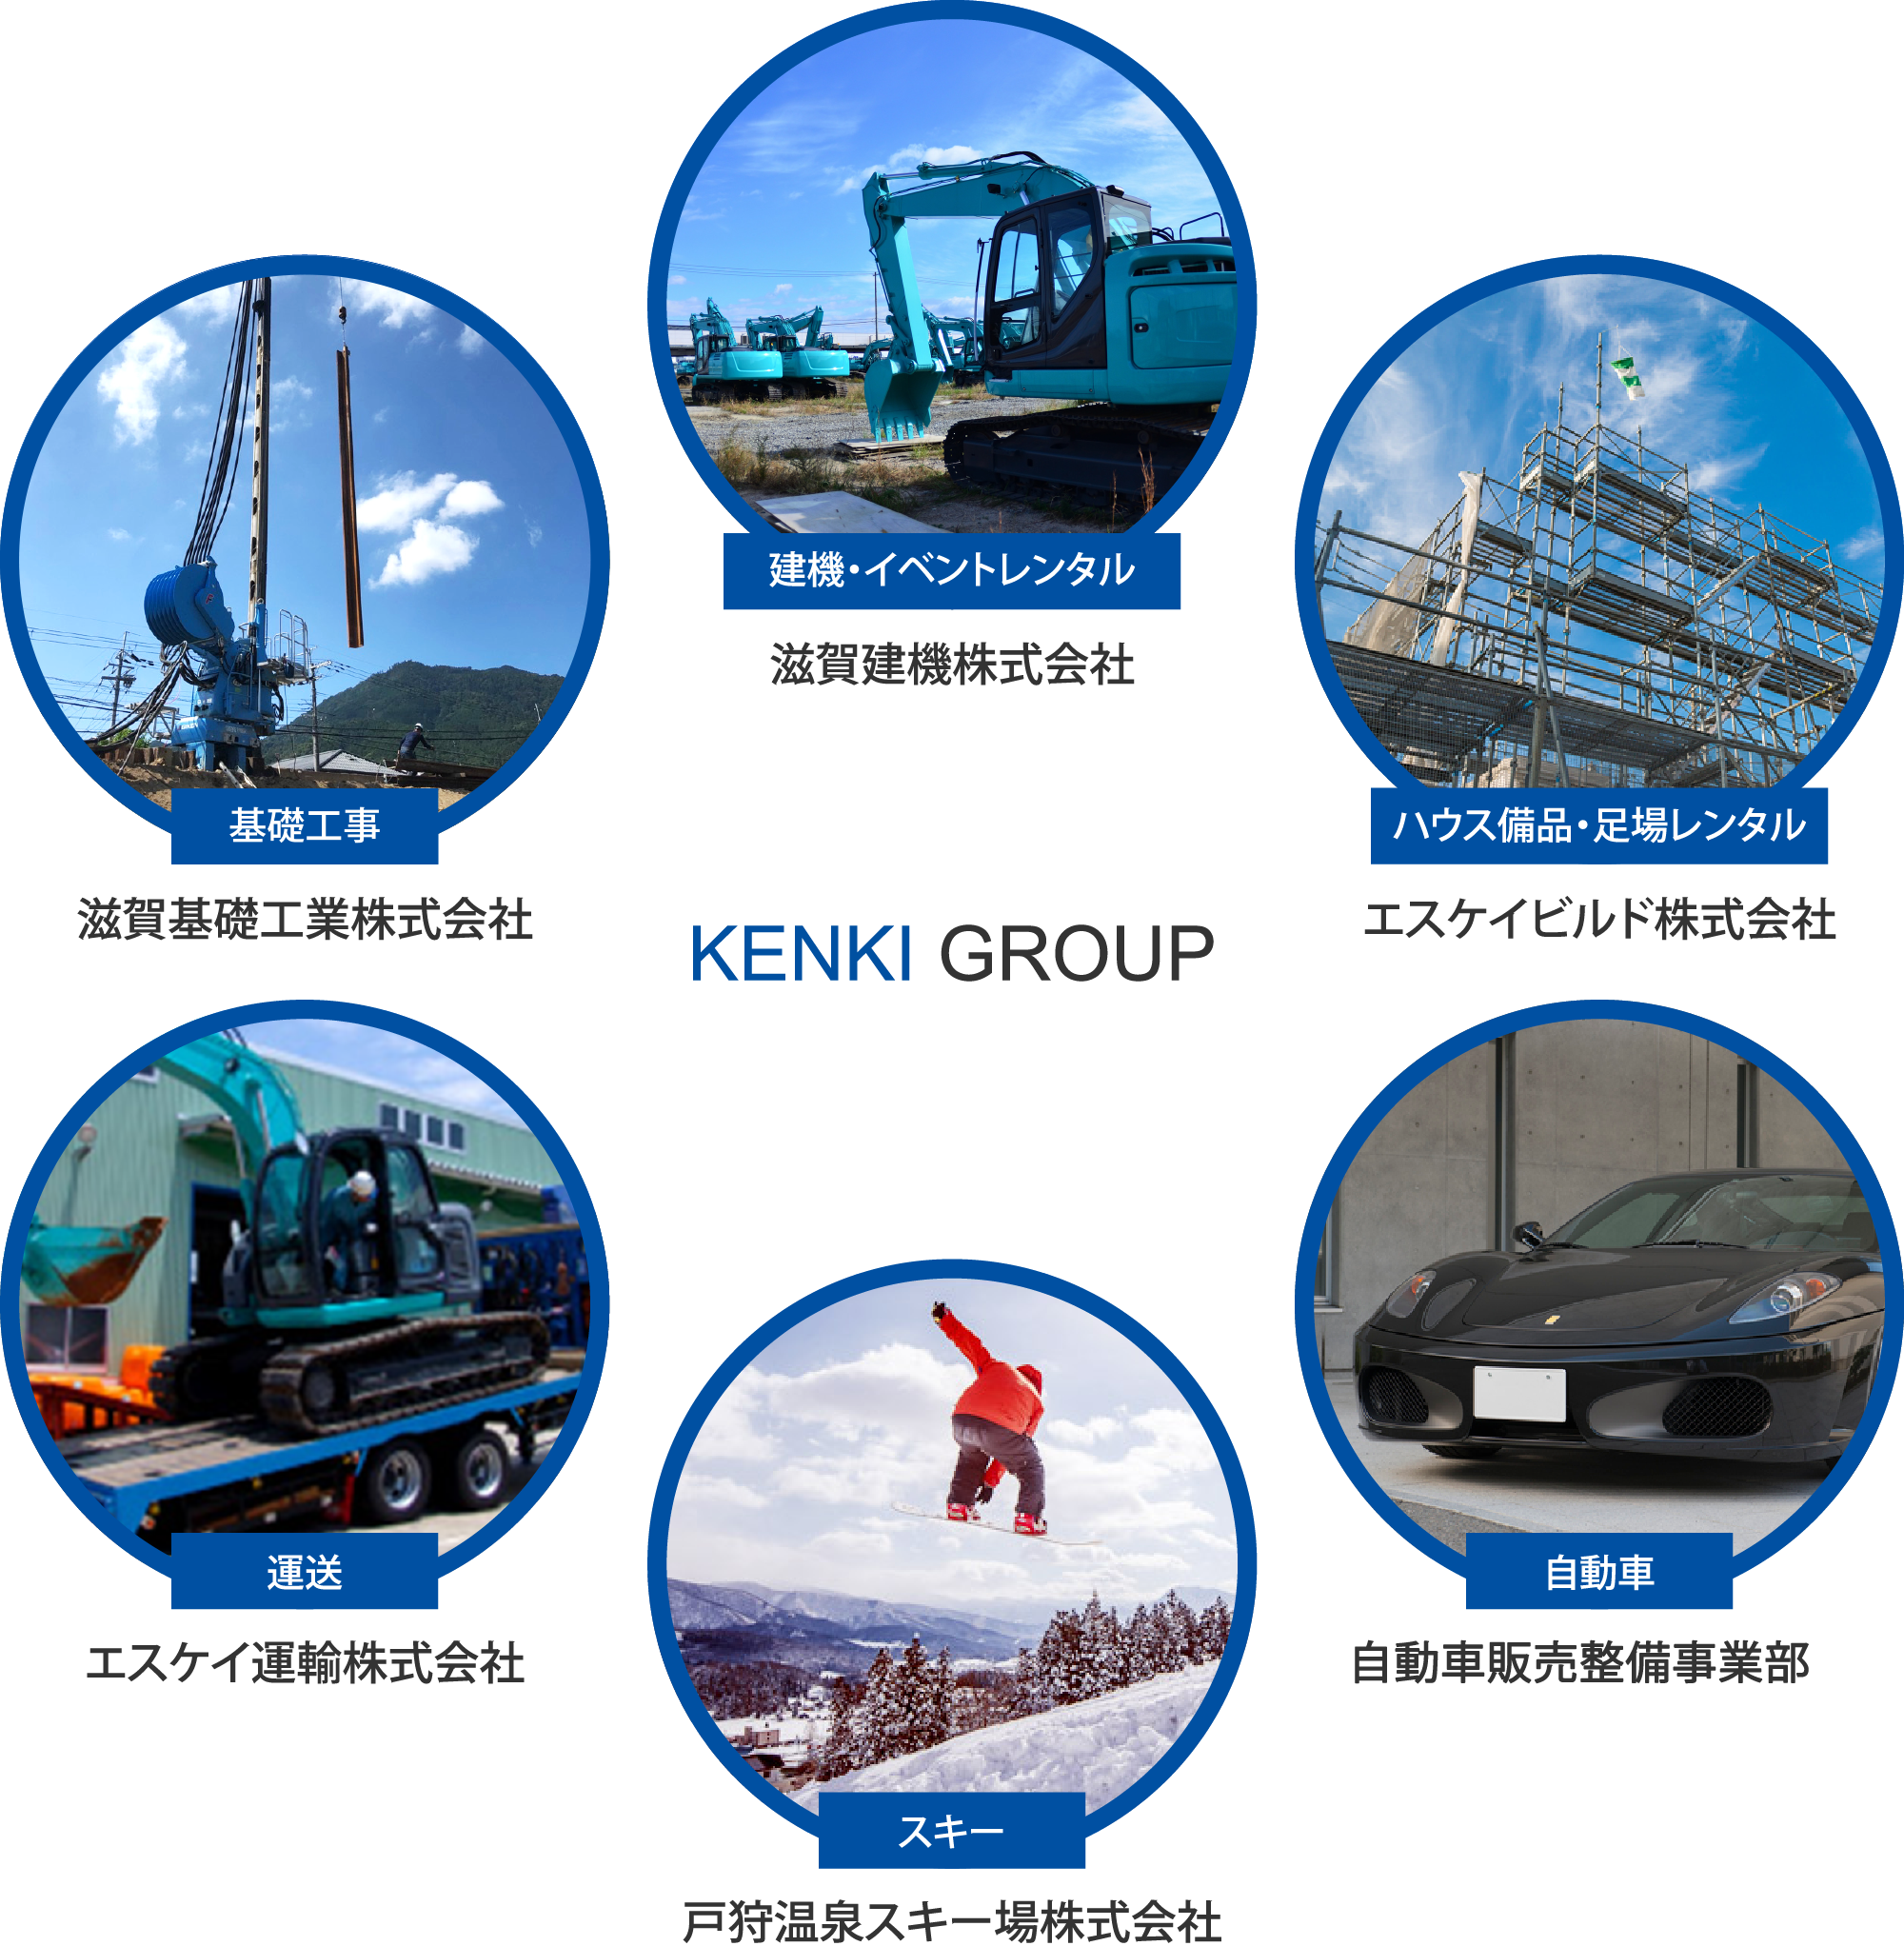 KENKI GROUP